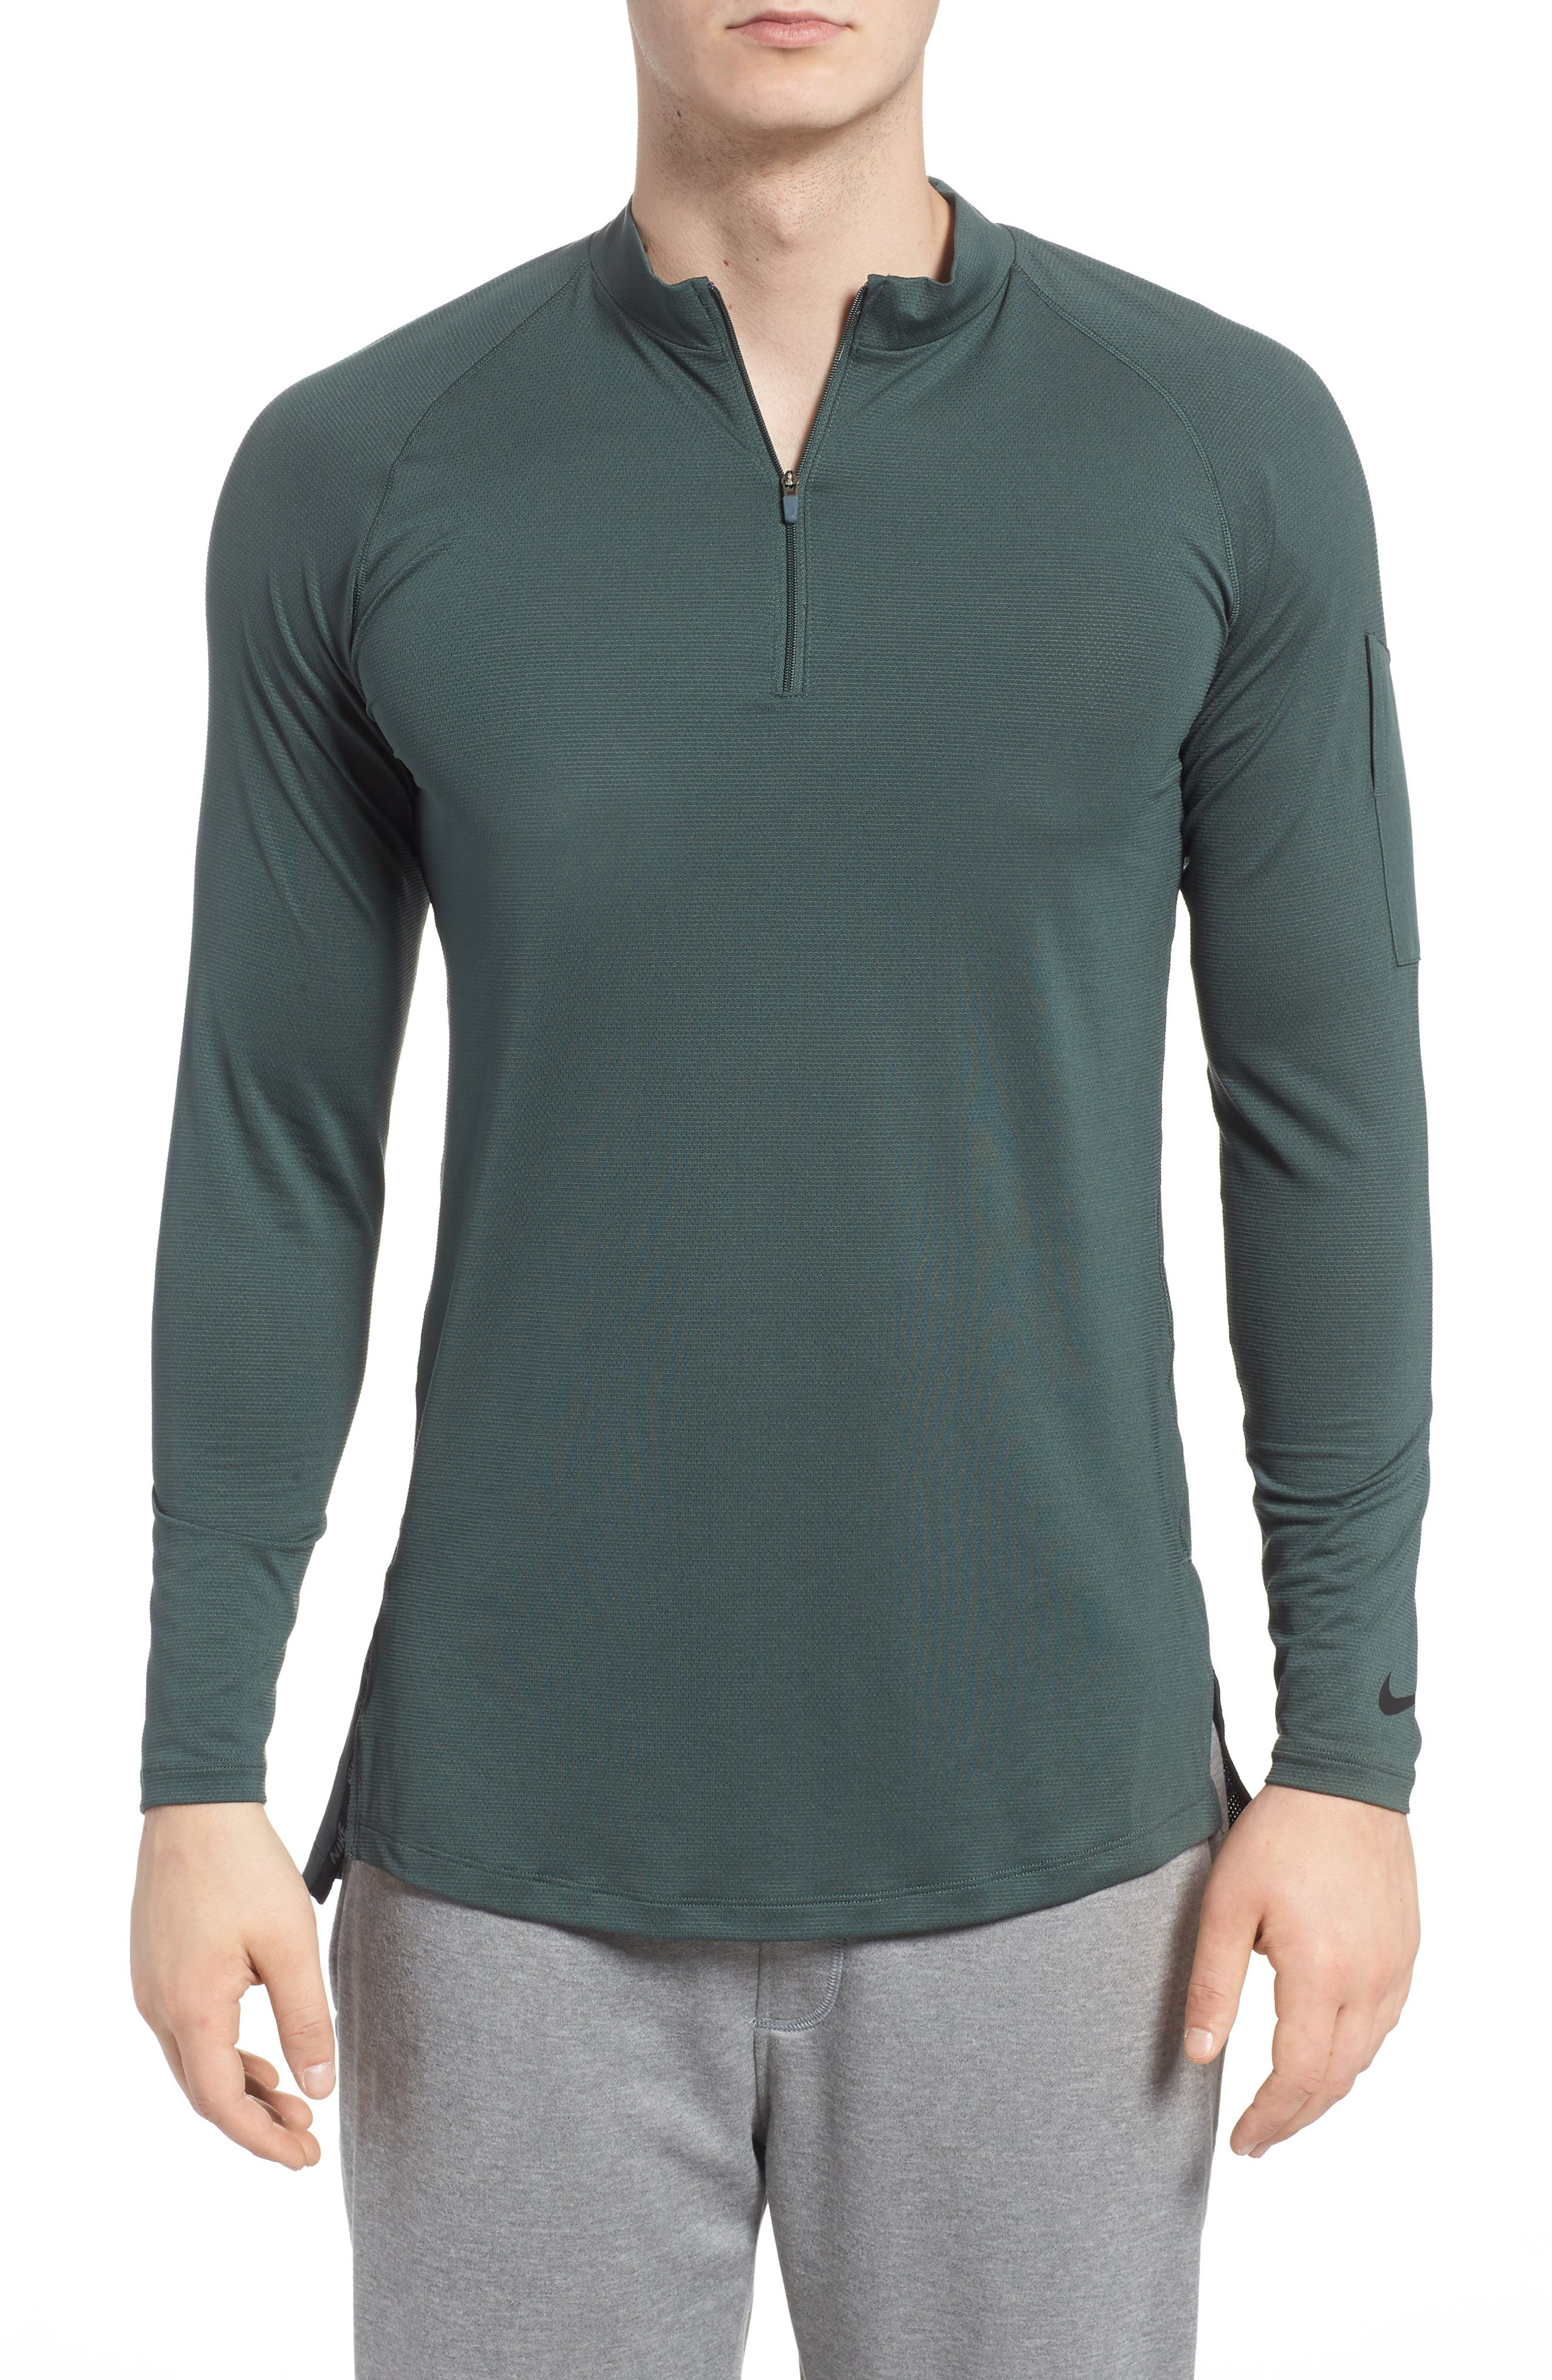 Nike Pro Fitted Utility Dry Tech Sport Top, Green